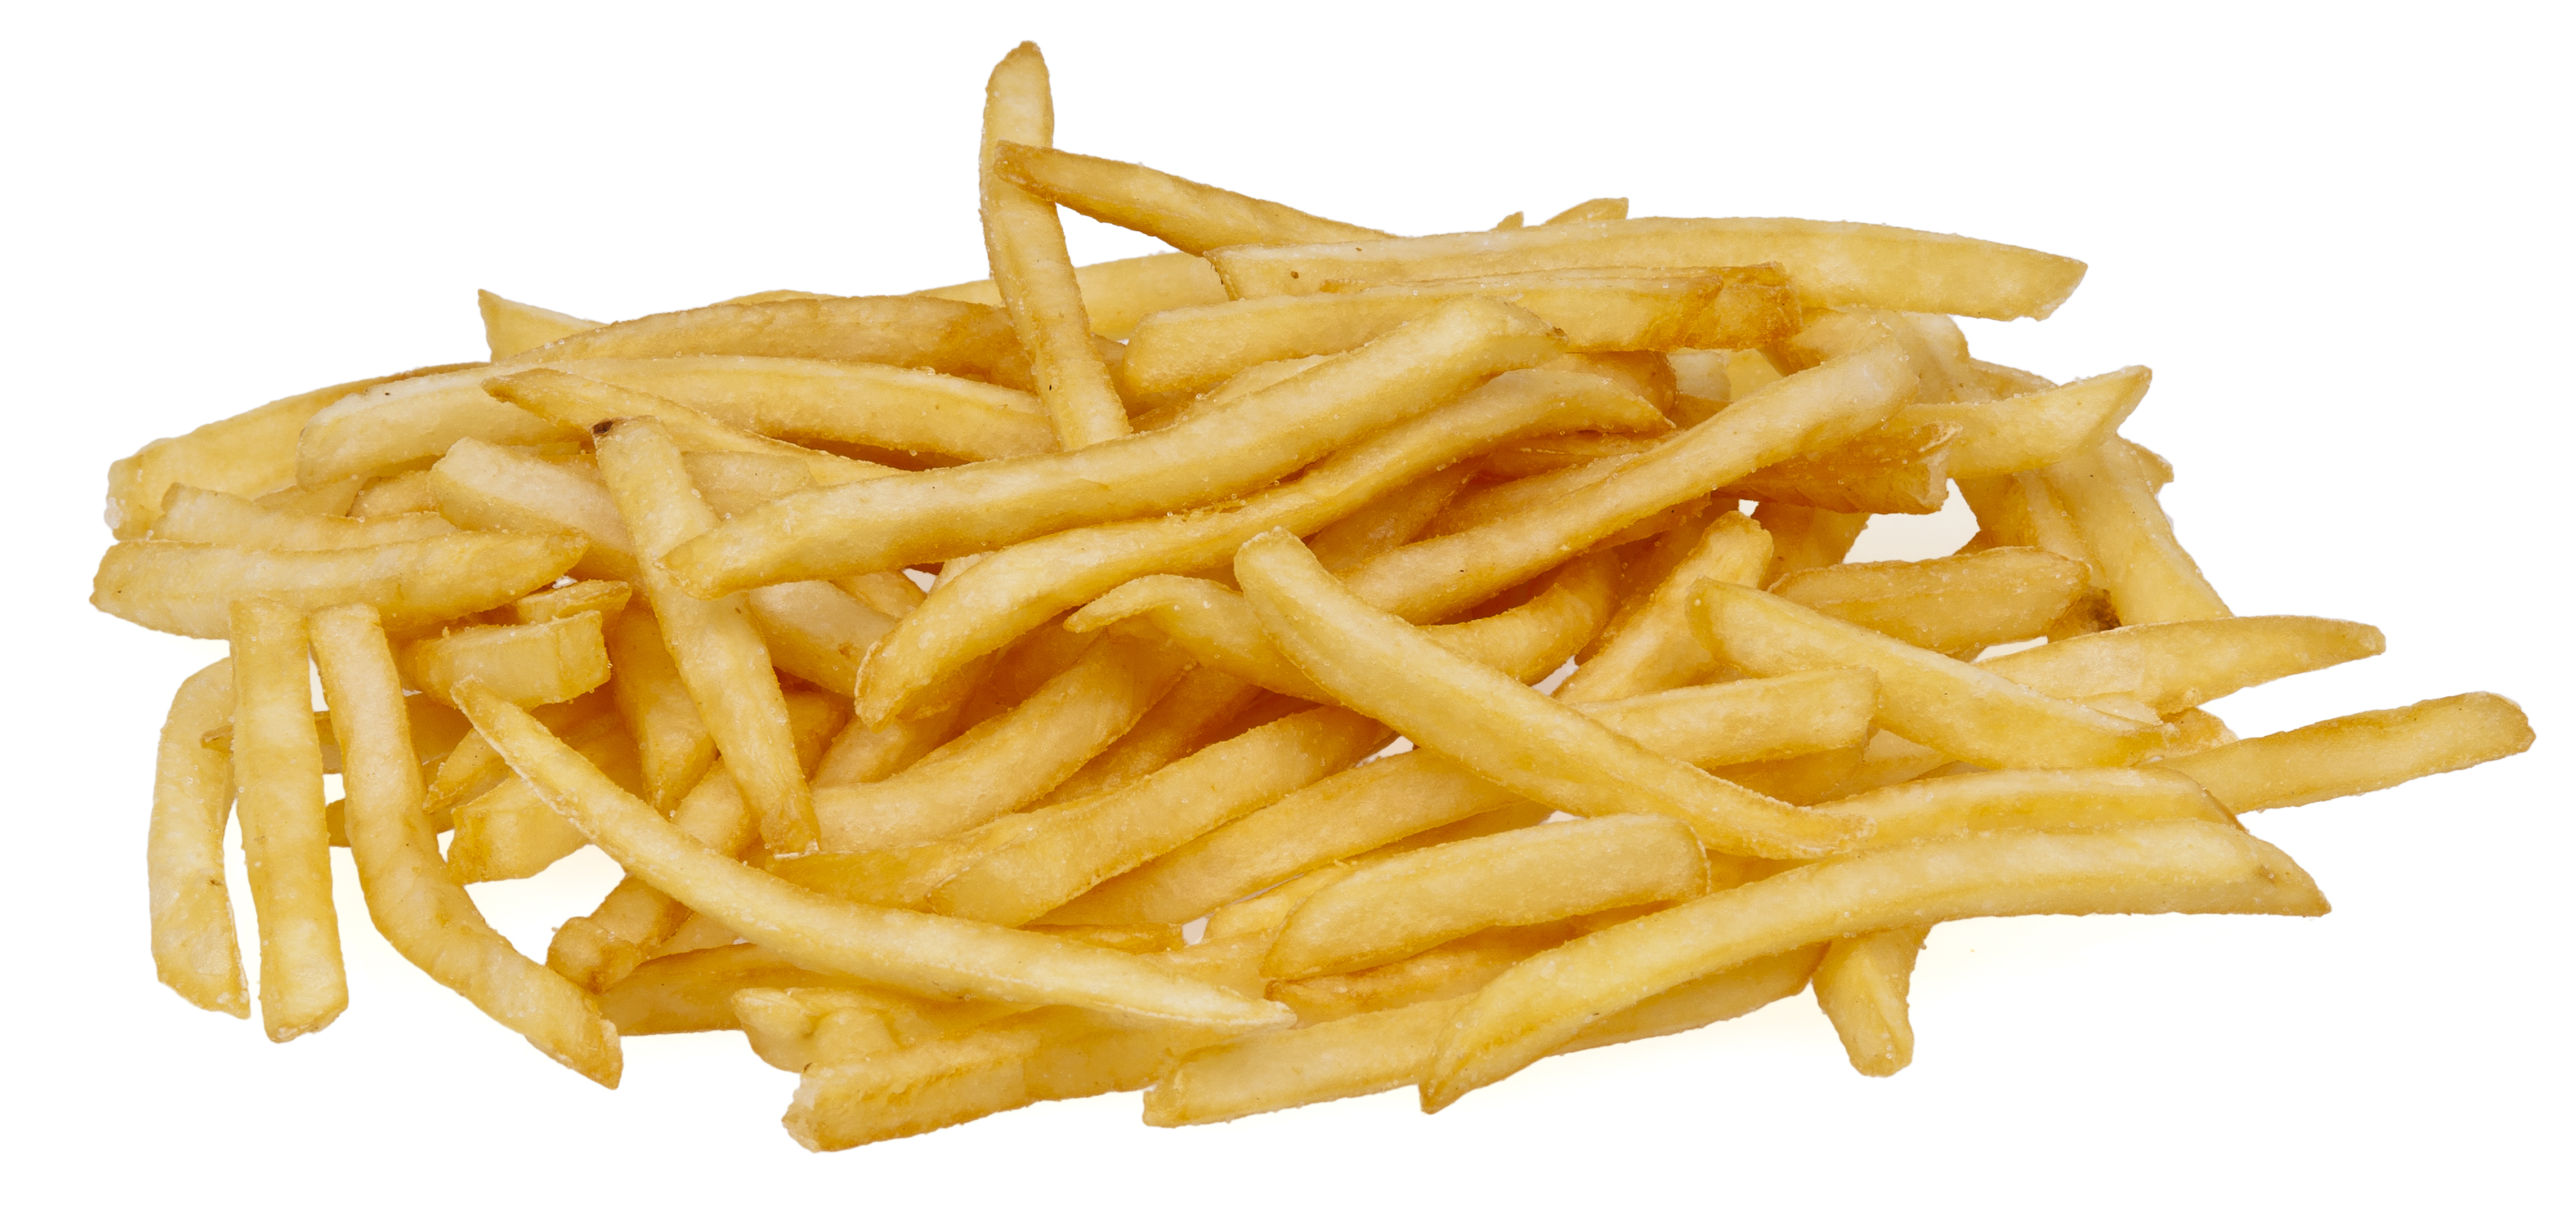 File:McDonalds-French-Fries-Plate.jpg - Wikipedia, the free ...